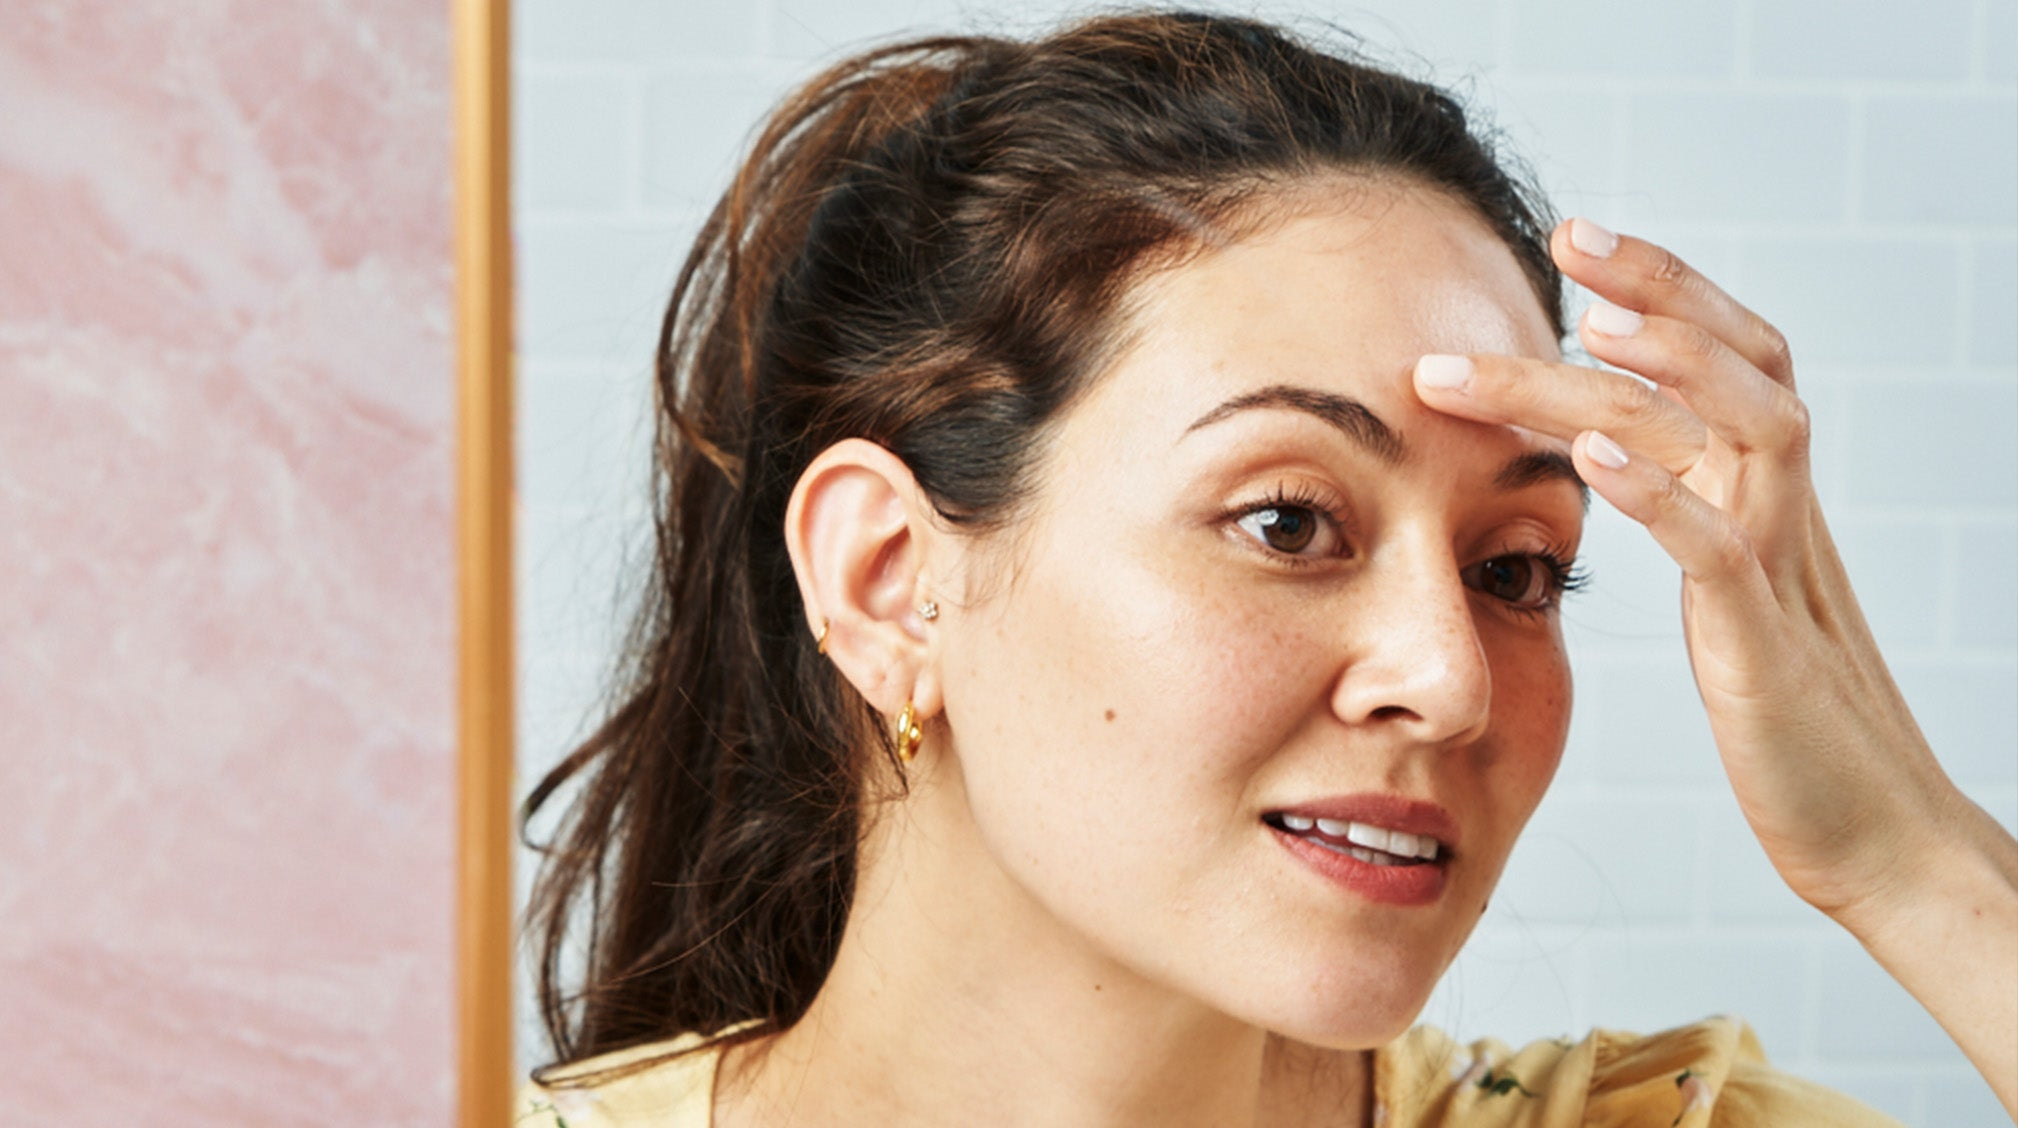 Yes, You Can Pop a Pimple (As Long As You Do It Right)